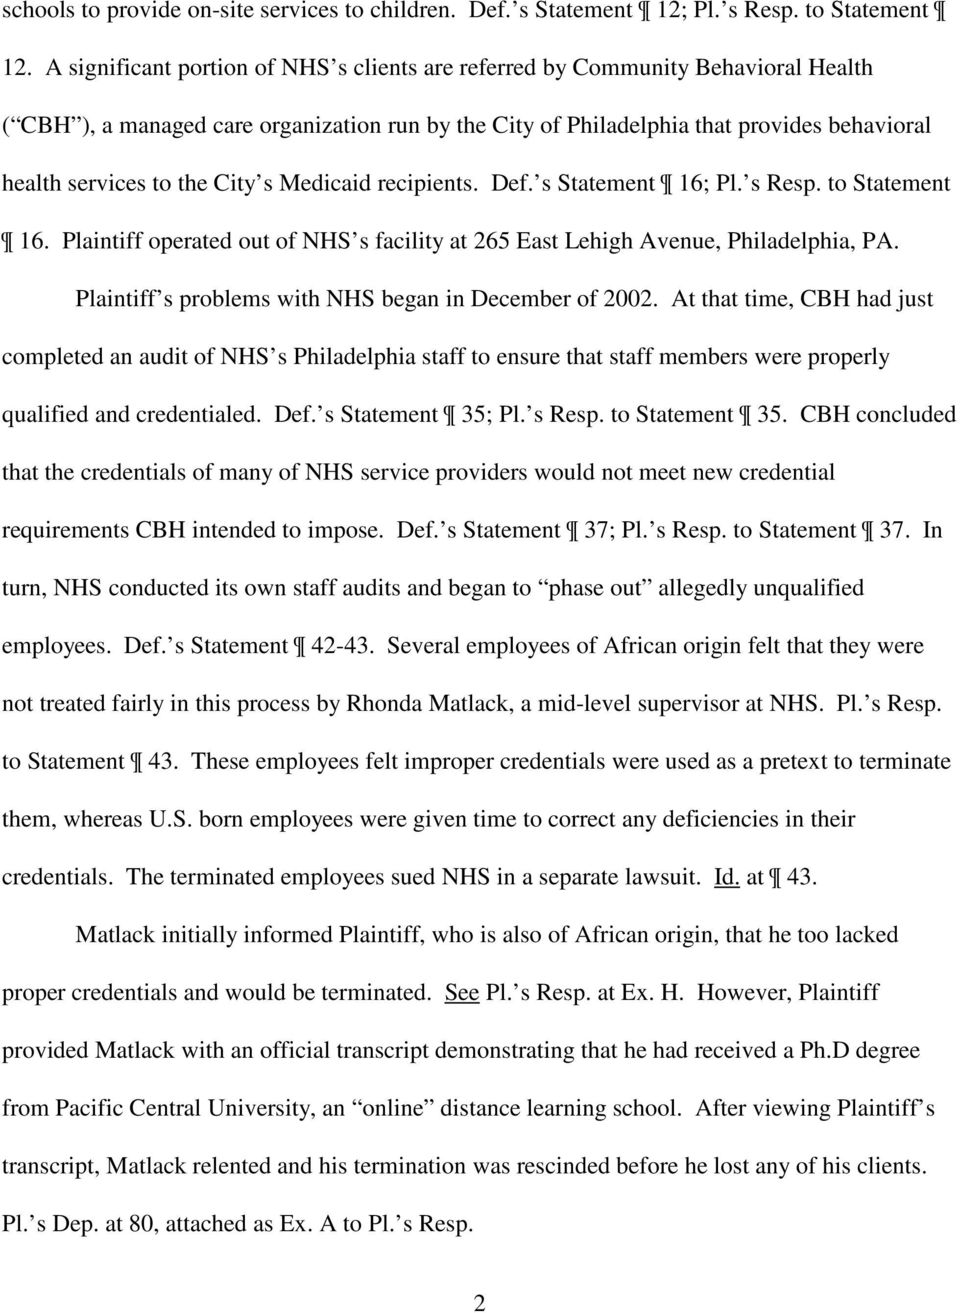 City s Medicaid recipients. Def. s Statement 16; Pl. s Resp. to Statement 16. Plaintiff operated out of NHS s facility at 265 East Lehigh Avenue, Philadelphia, PA.